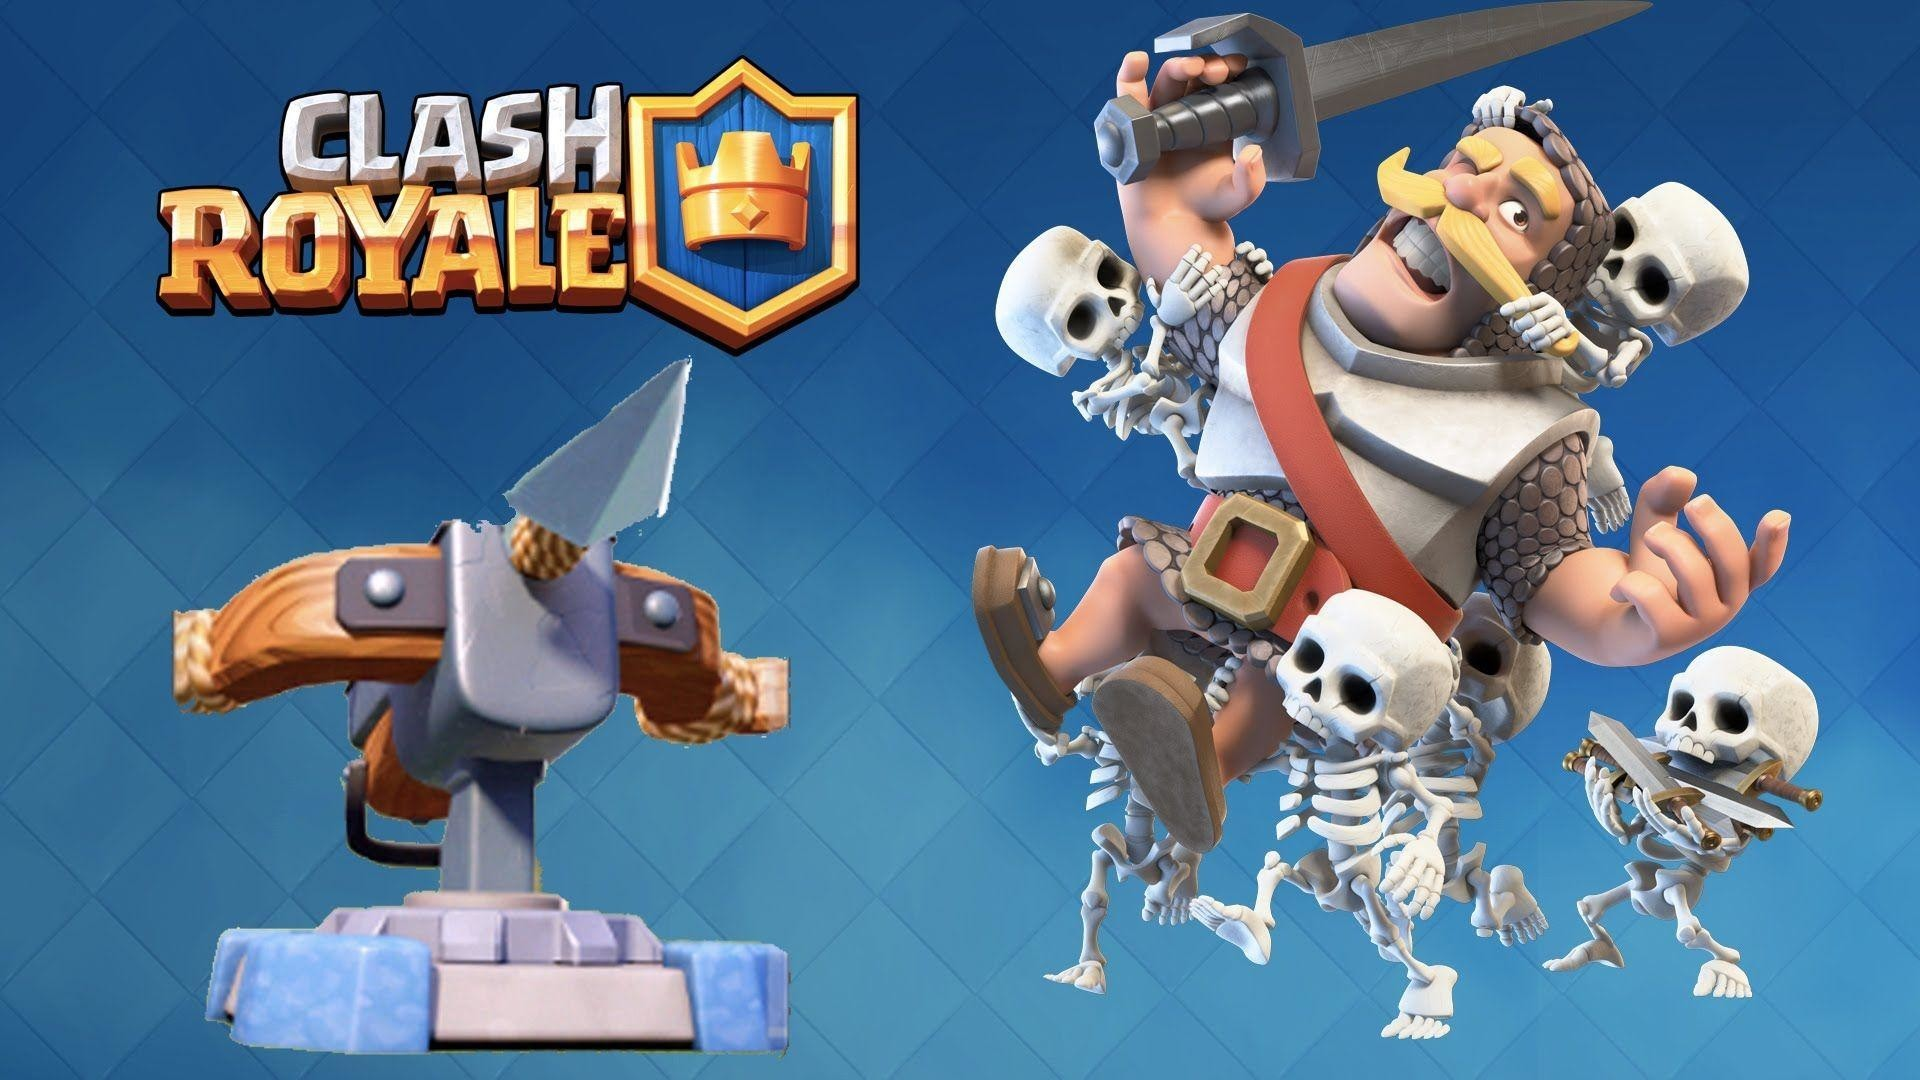 1920x1080  Clash Royale Wallpapers HD #28252 Wallpaper | Download HD  Wallpaper